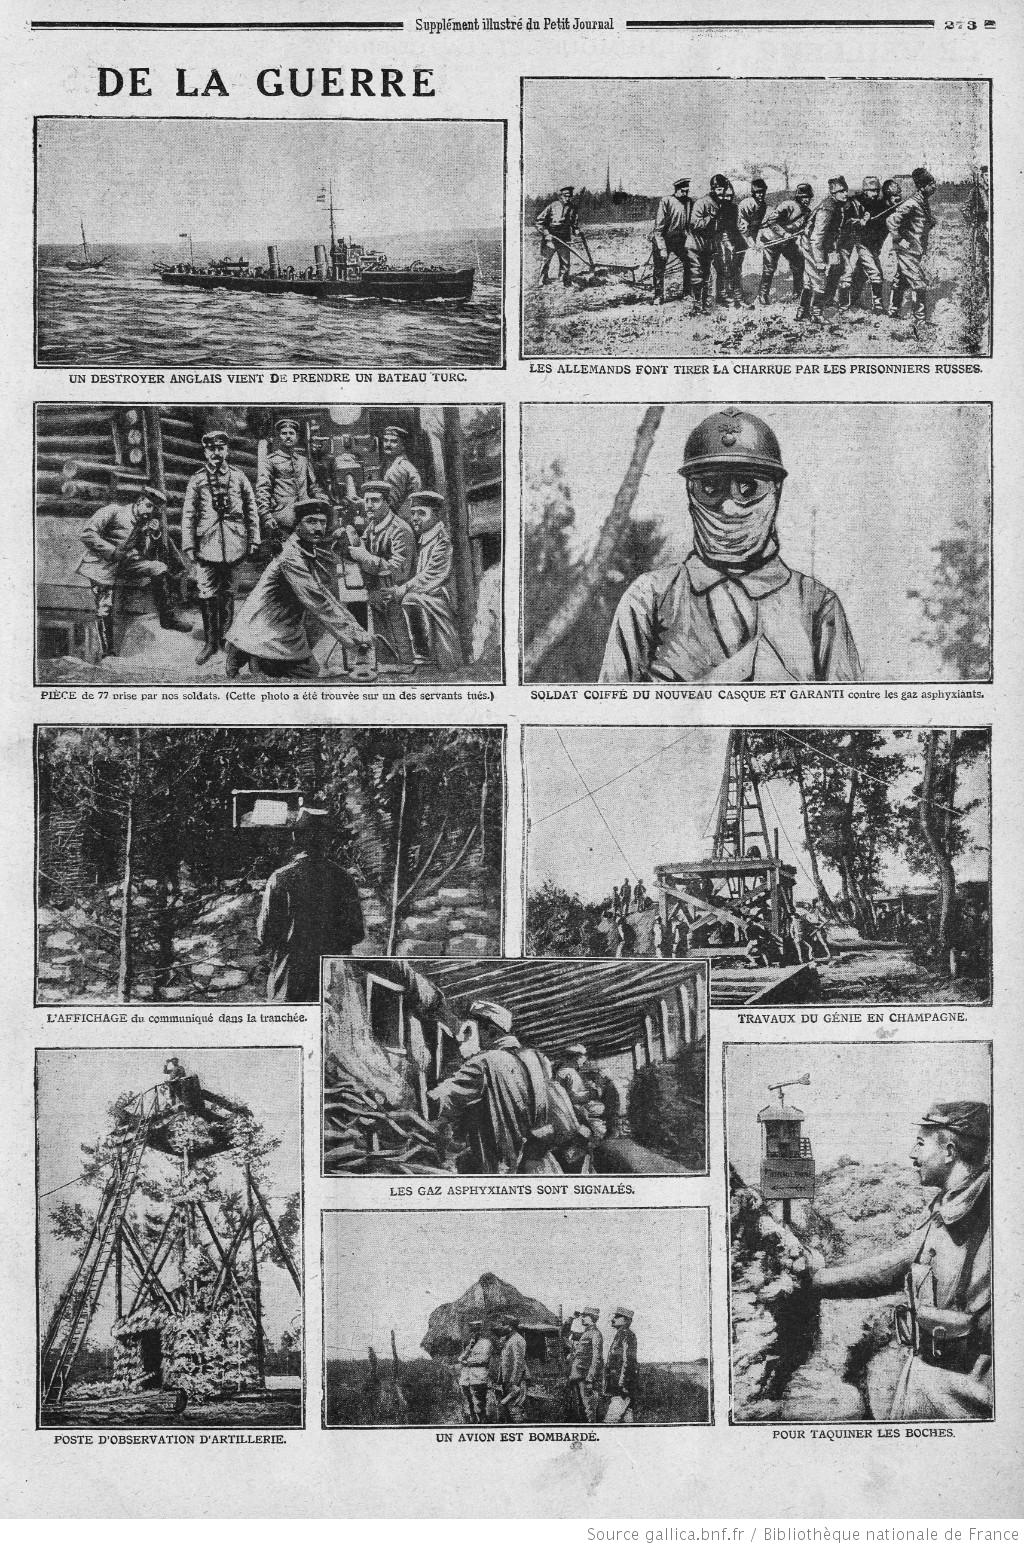 LPJ Illustre 1915-10-24 D.jpg